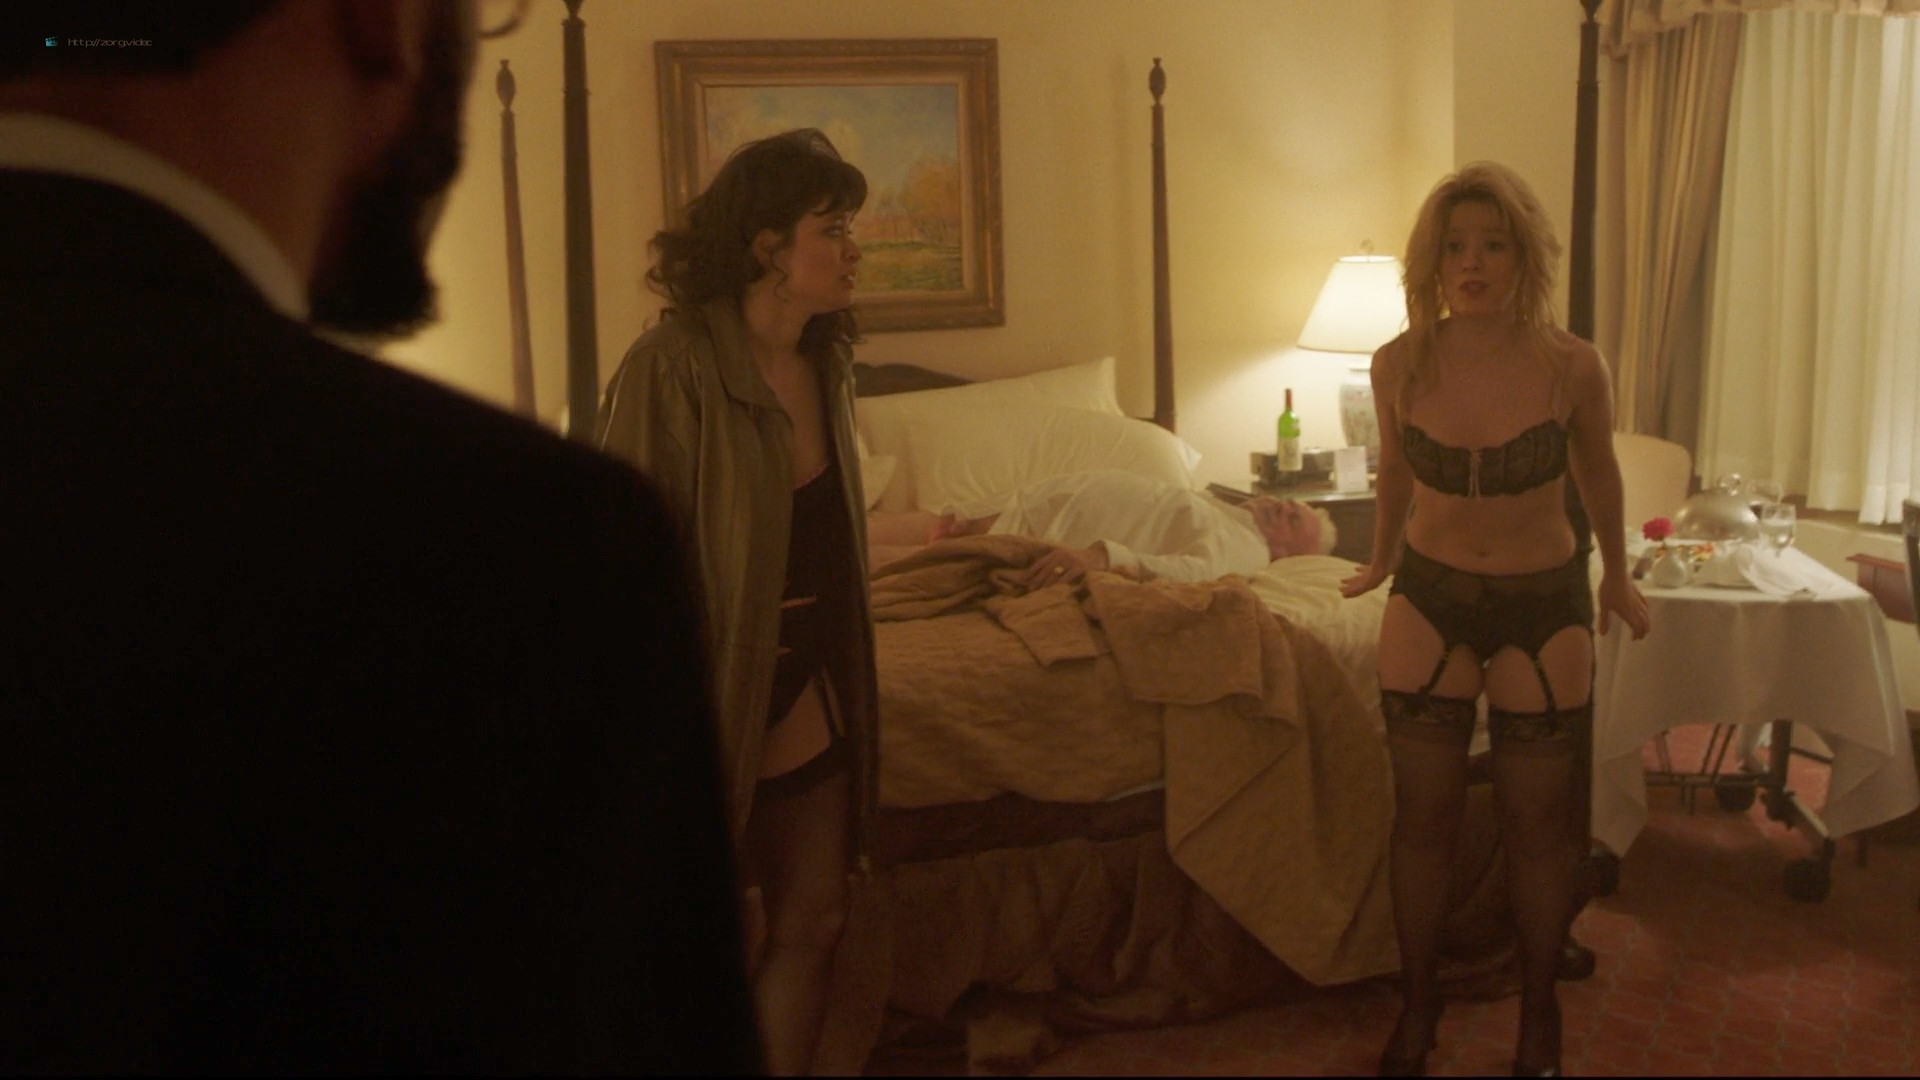 Margarita Levieva nude sex Emily Meade, Paloma Guzman and others hot and nude - The Deuce (2019) s3e4 1080p (6)